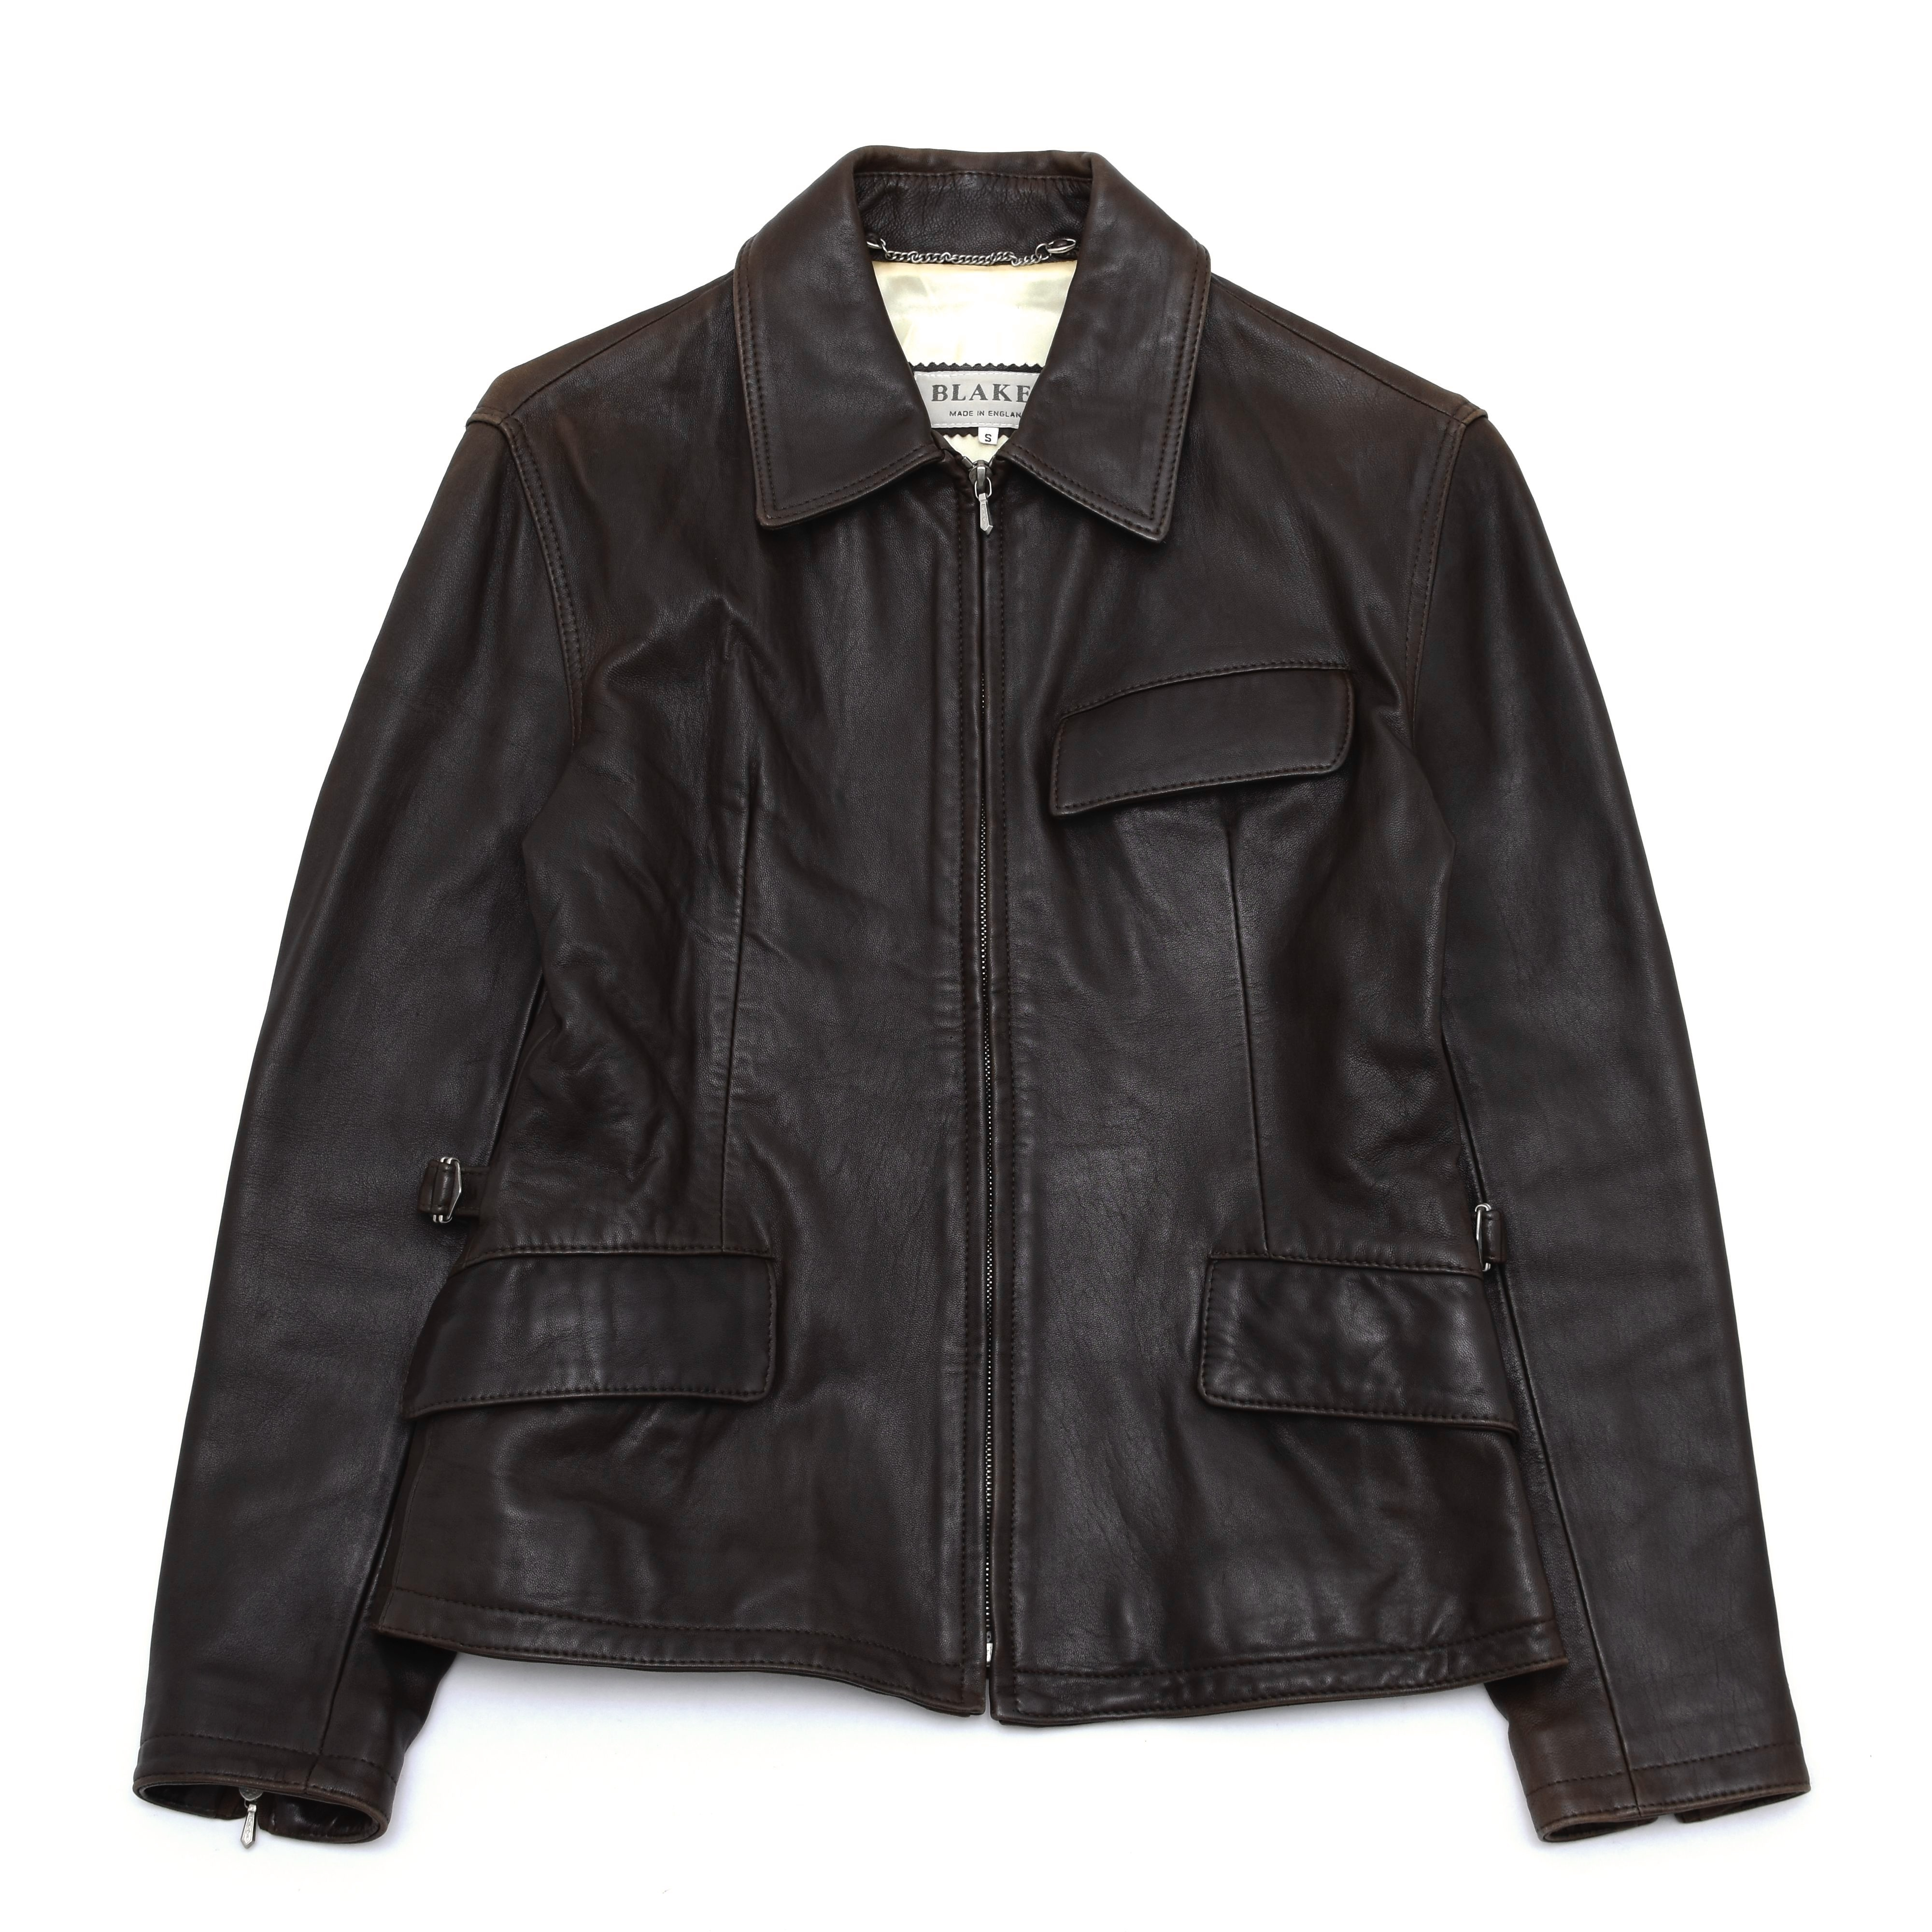 Made in England BRAKES leather jacket